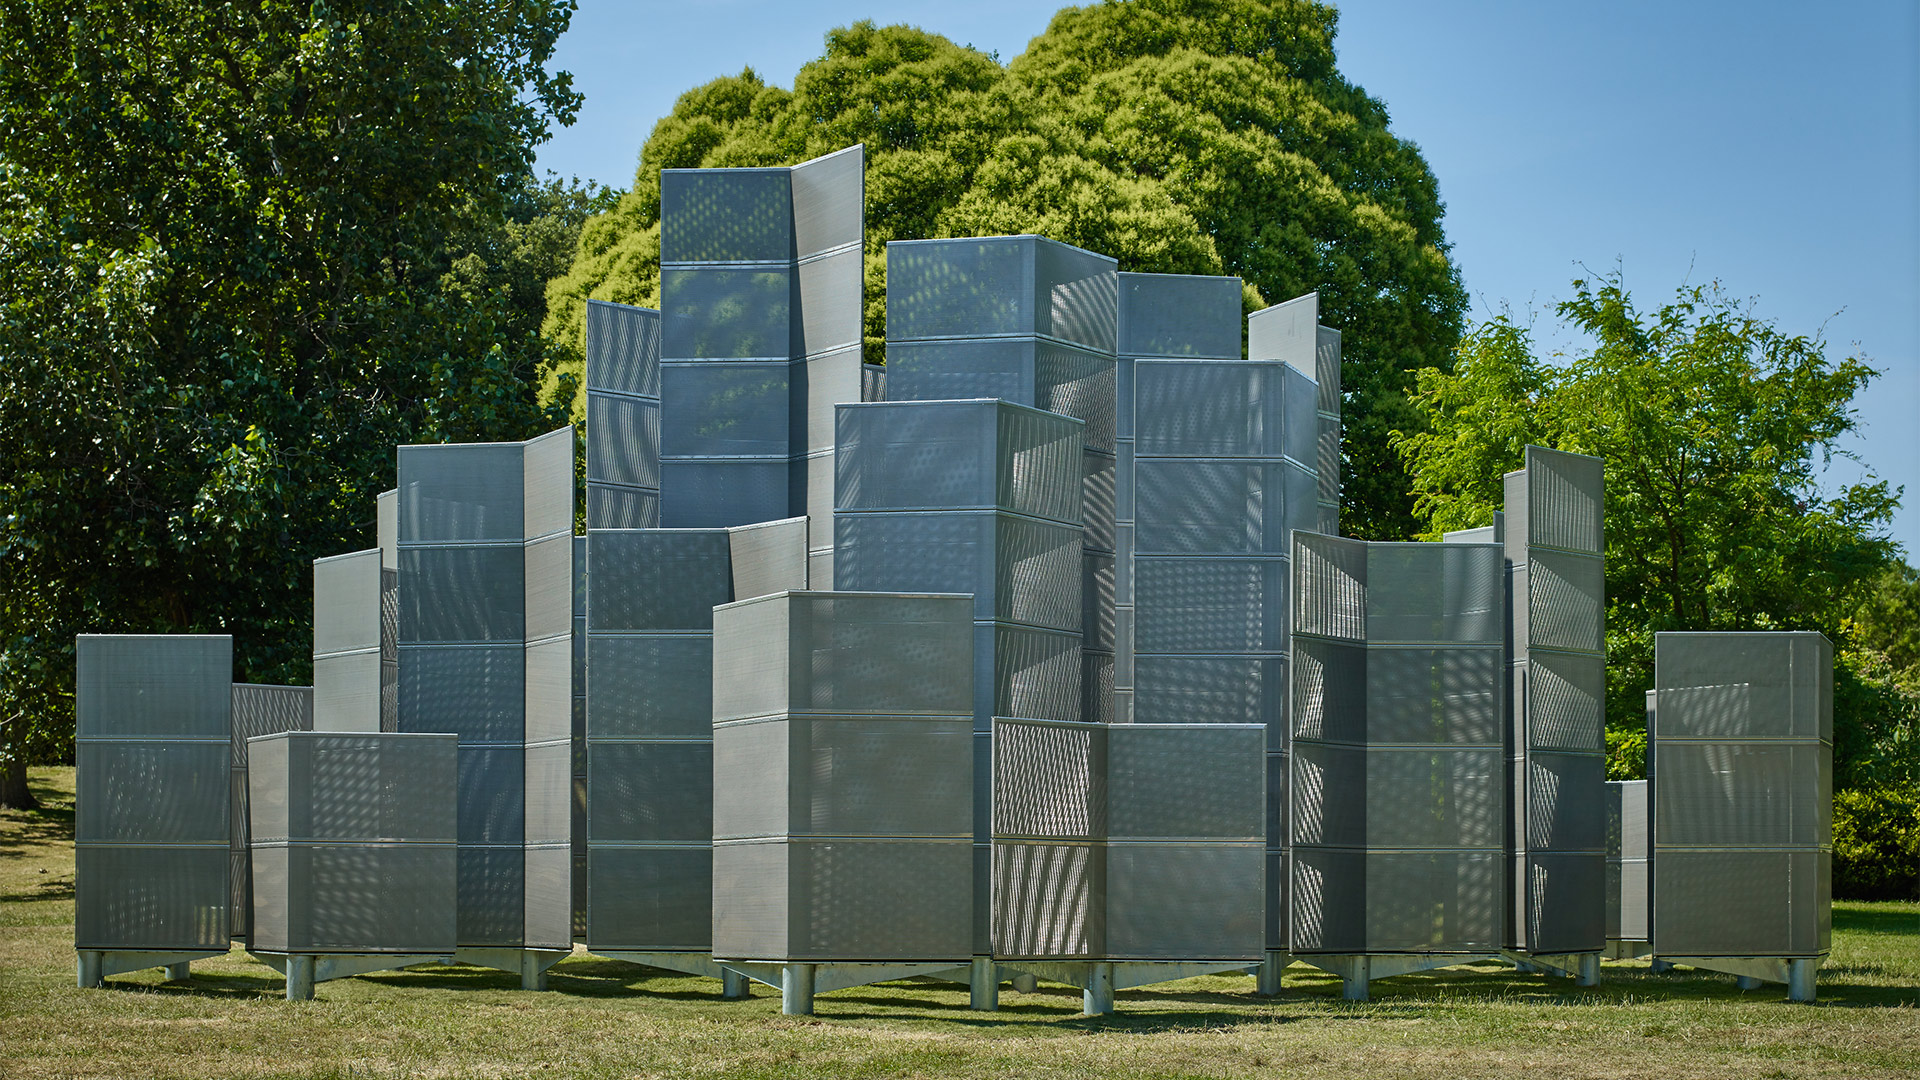 Vertical individual metallic pieces make up Optic Laybrinth, set on the grass against a backdrop of blue sky and trees.